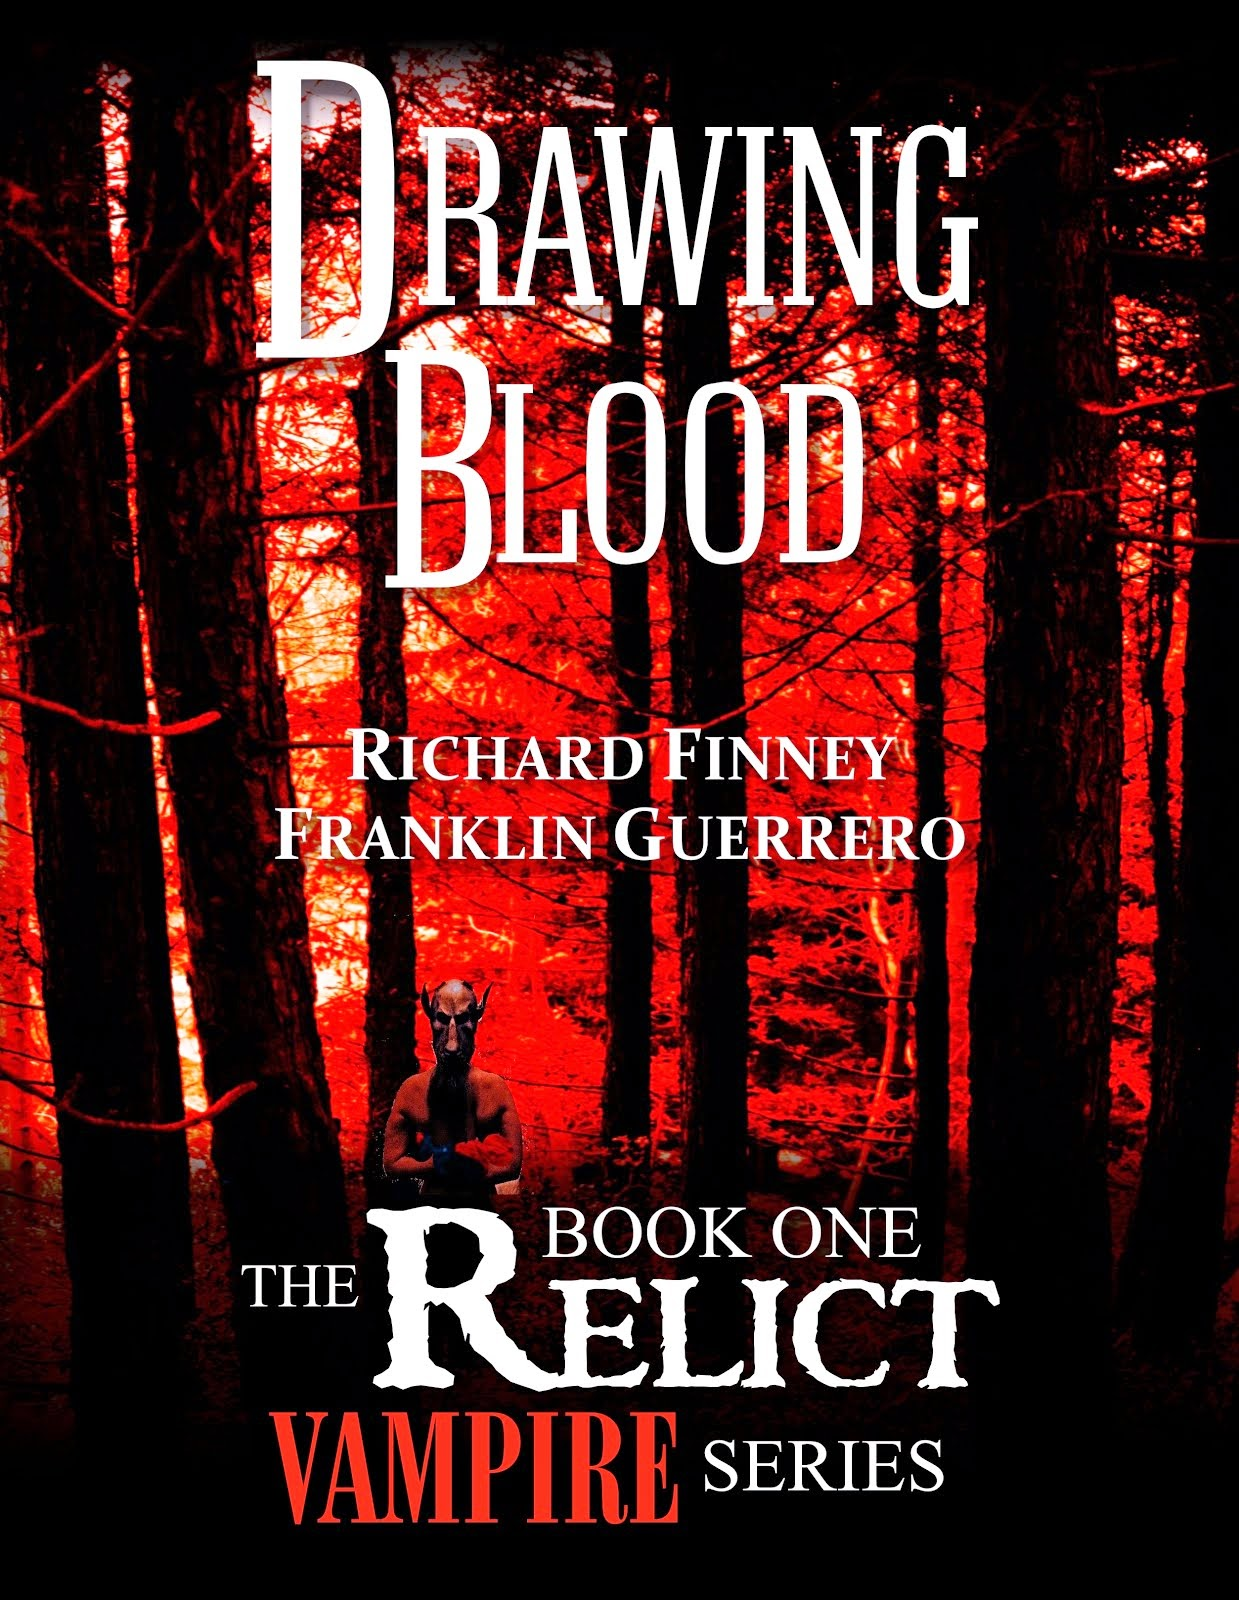 RELICT - Book One of the Vampire Series is just 99 cents!